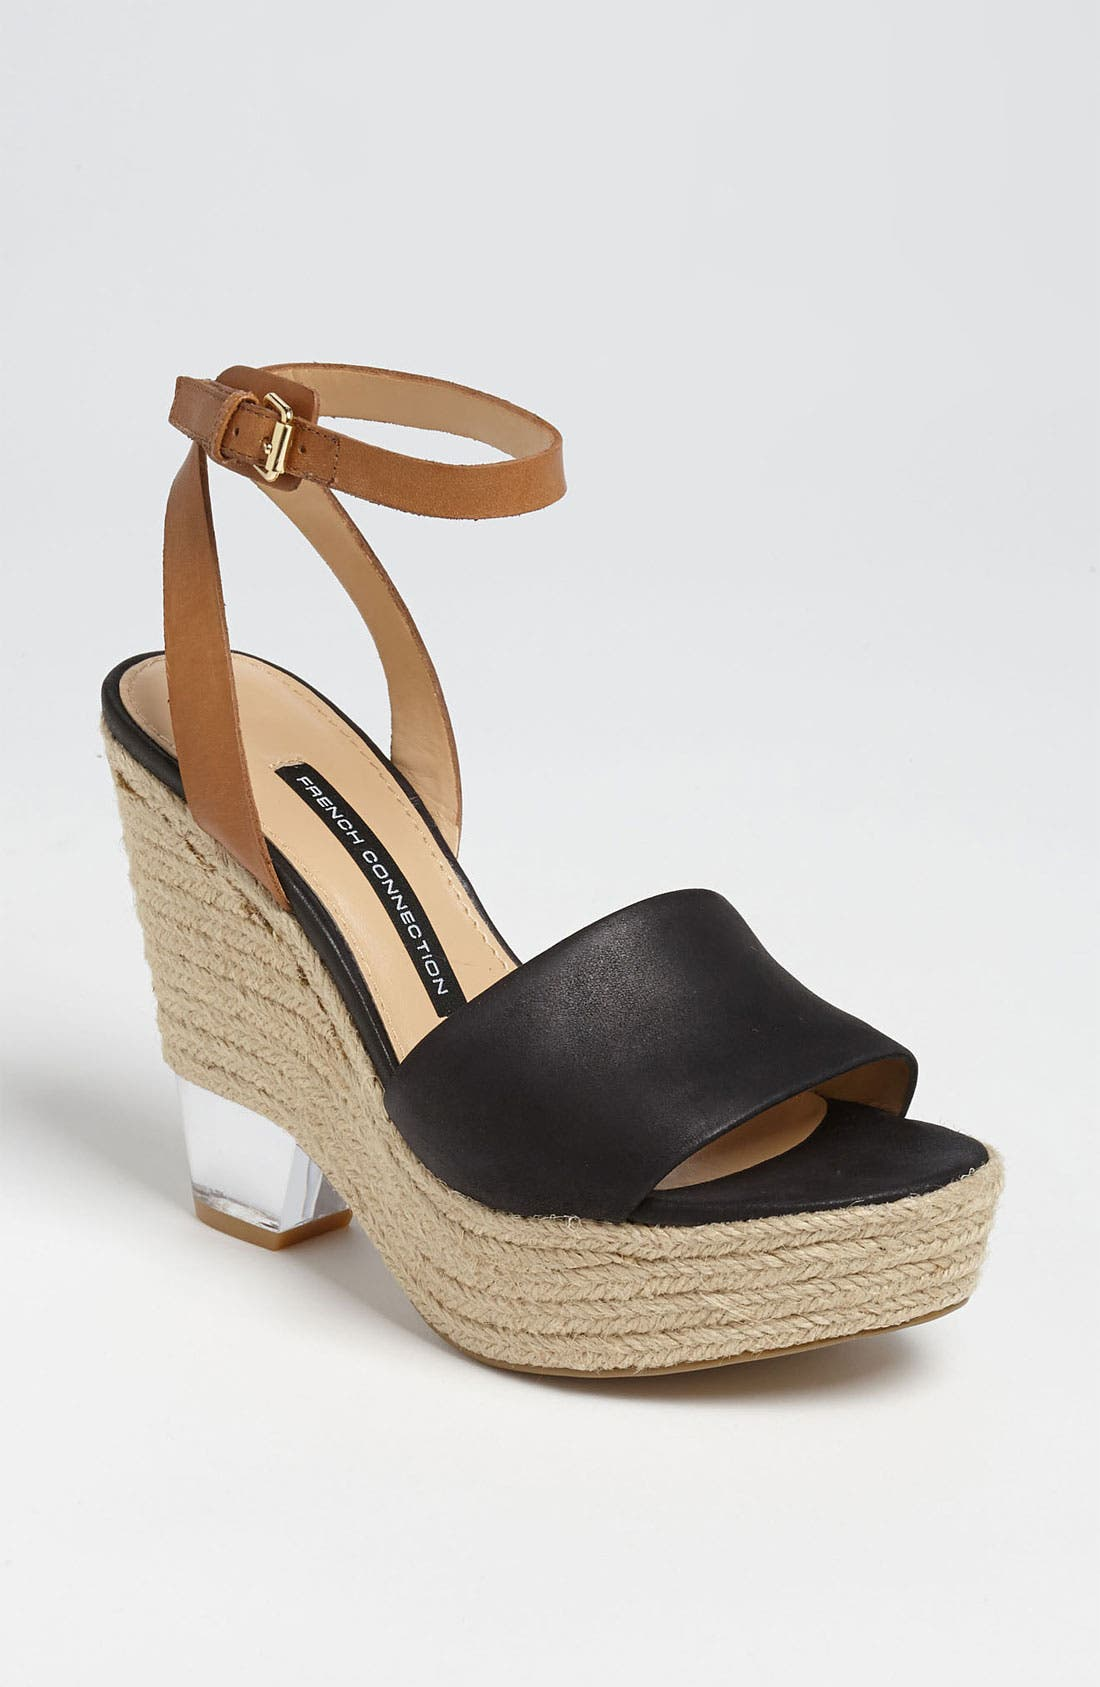 Main Image - French Connection 'Abby' Sandal